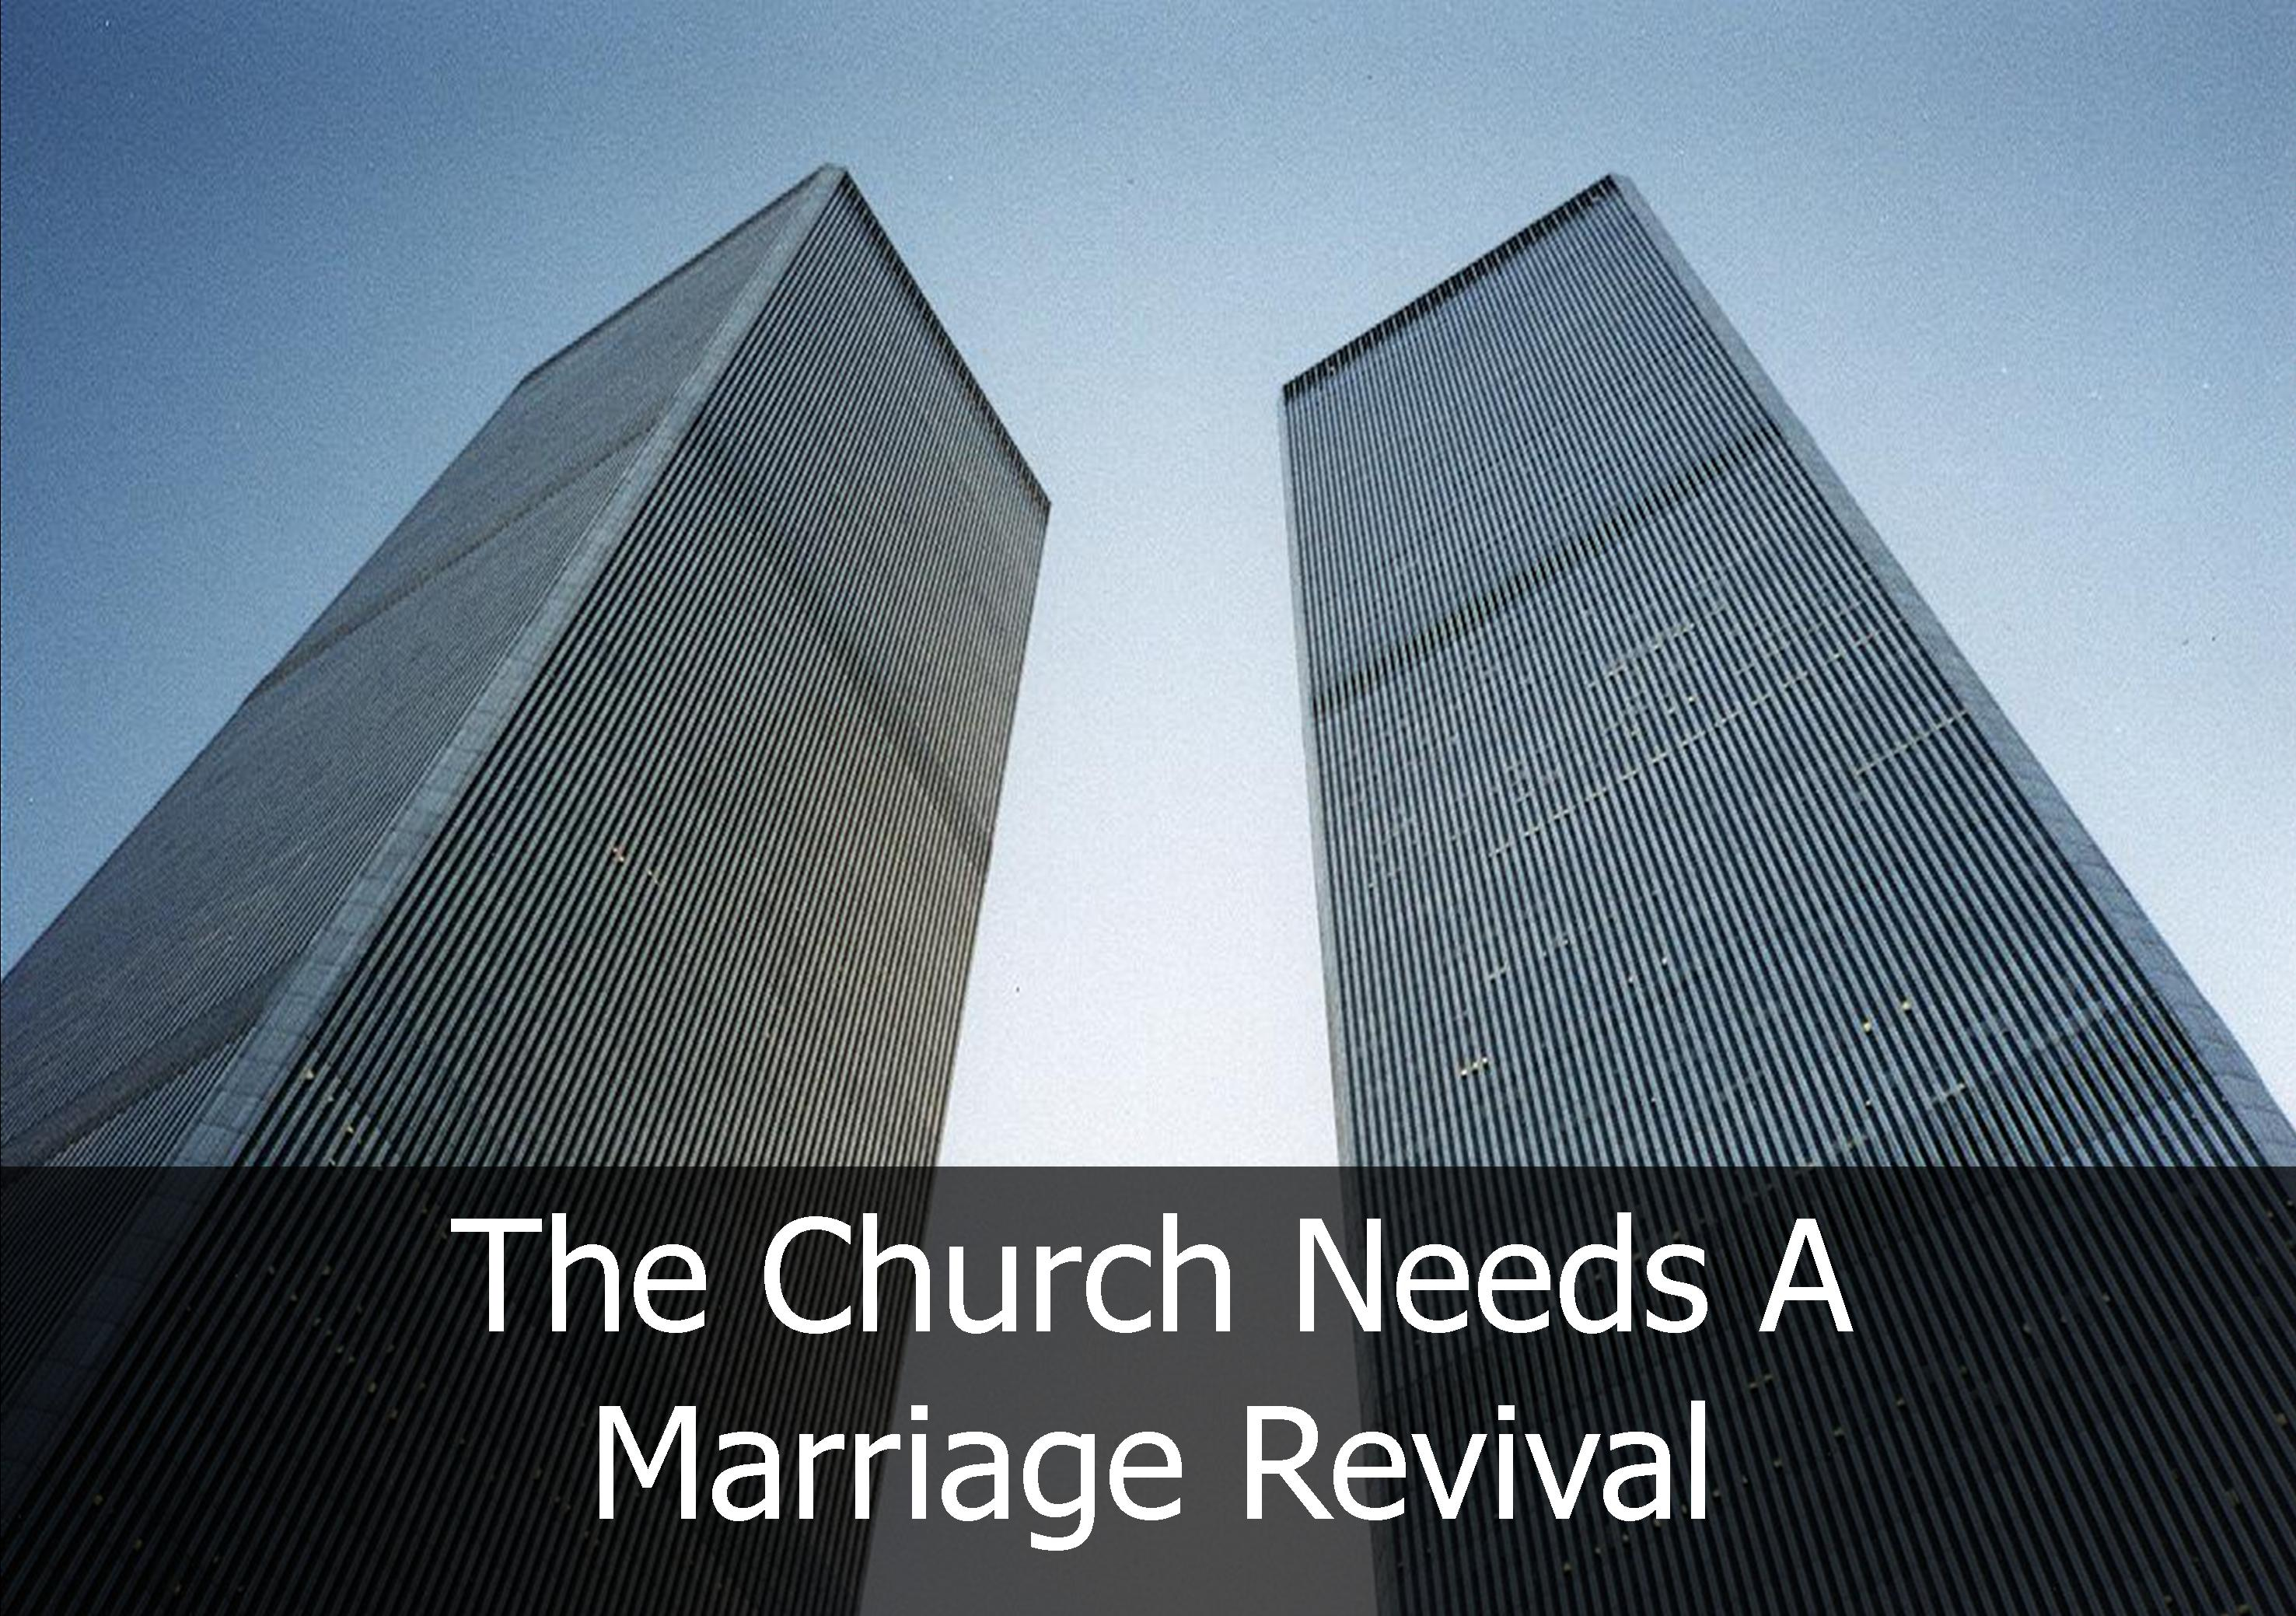 Marriage Revival